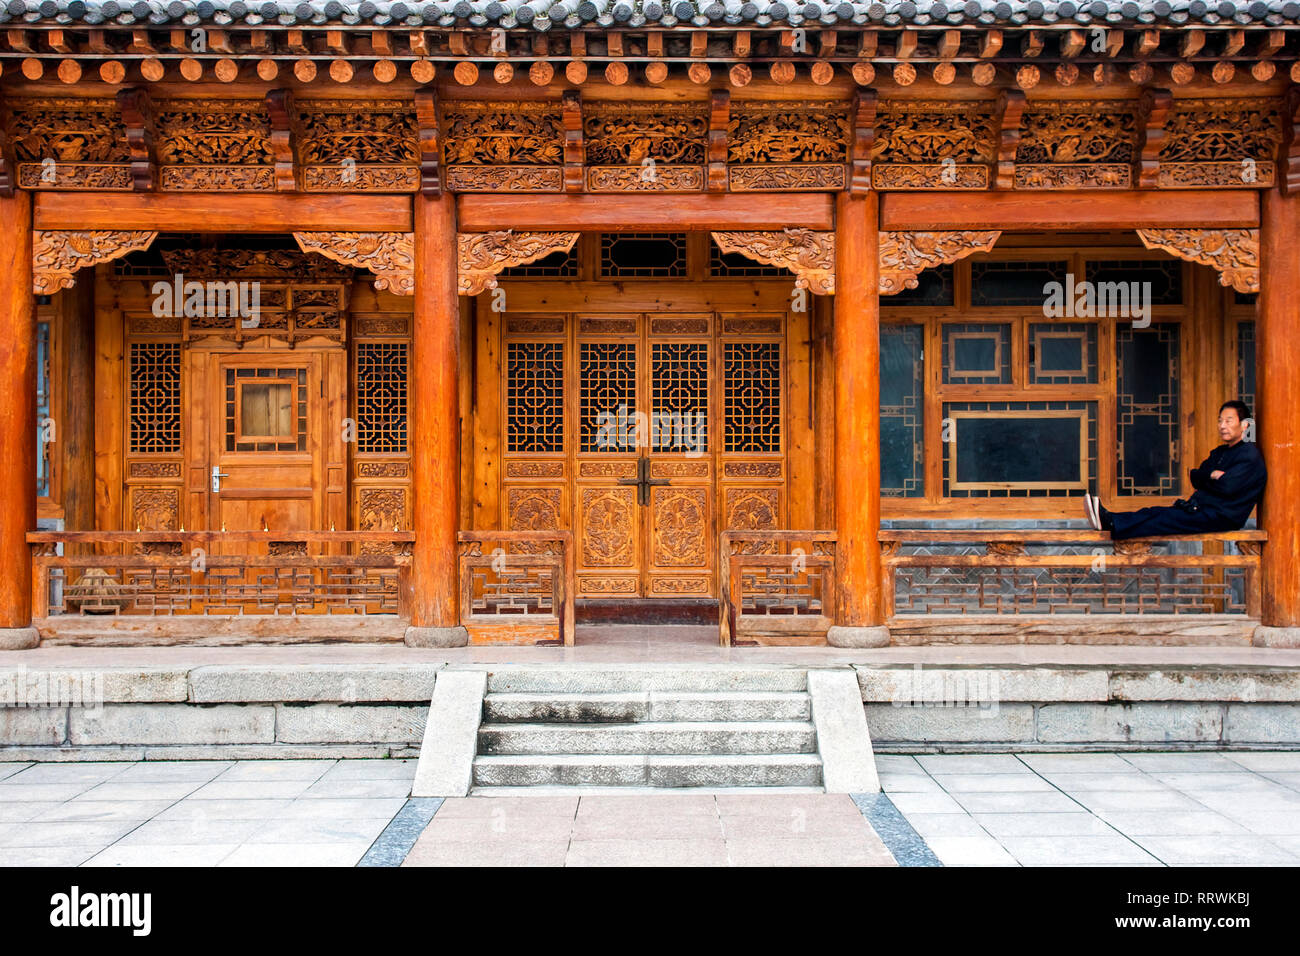 CHINA, XINING - SEPTEMBER 15, 2018. Traditional Wooden Chinese Architecture Of One Storie House. Courtyard Of A Renovated Oriental Building. - Stock Image